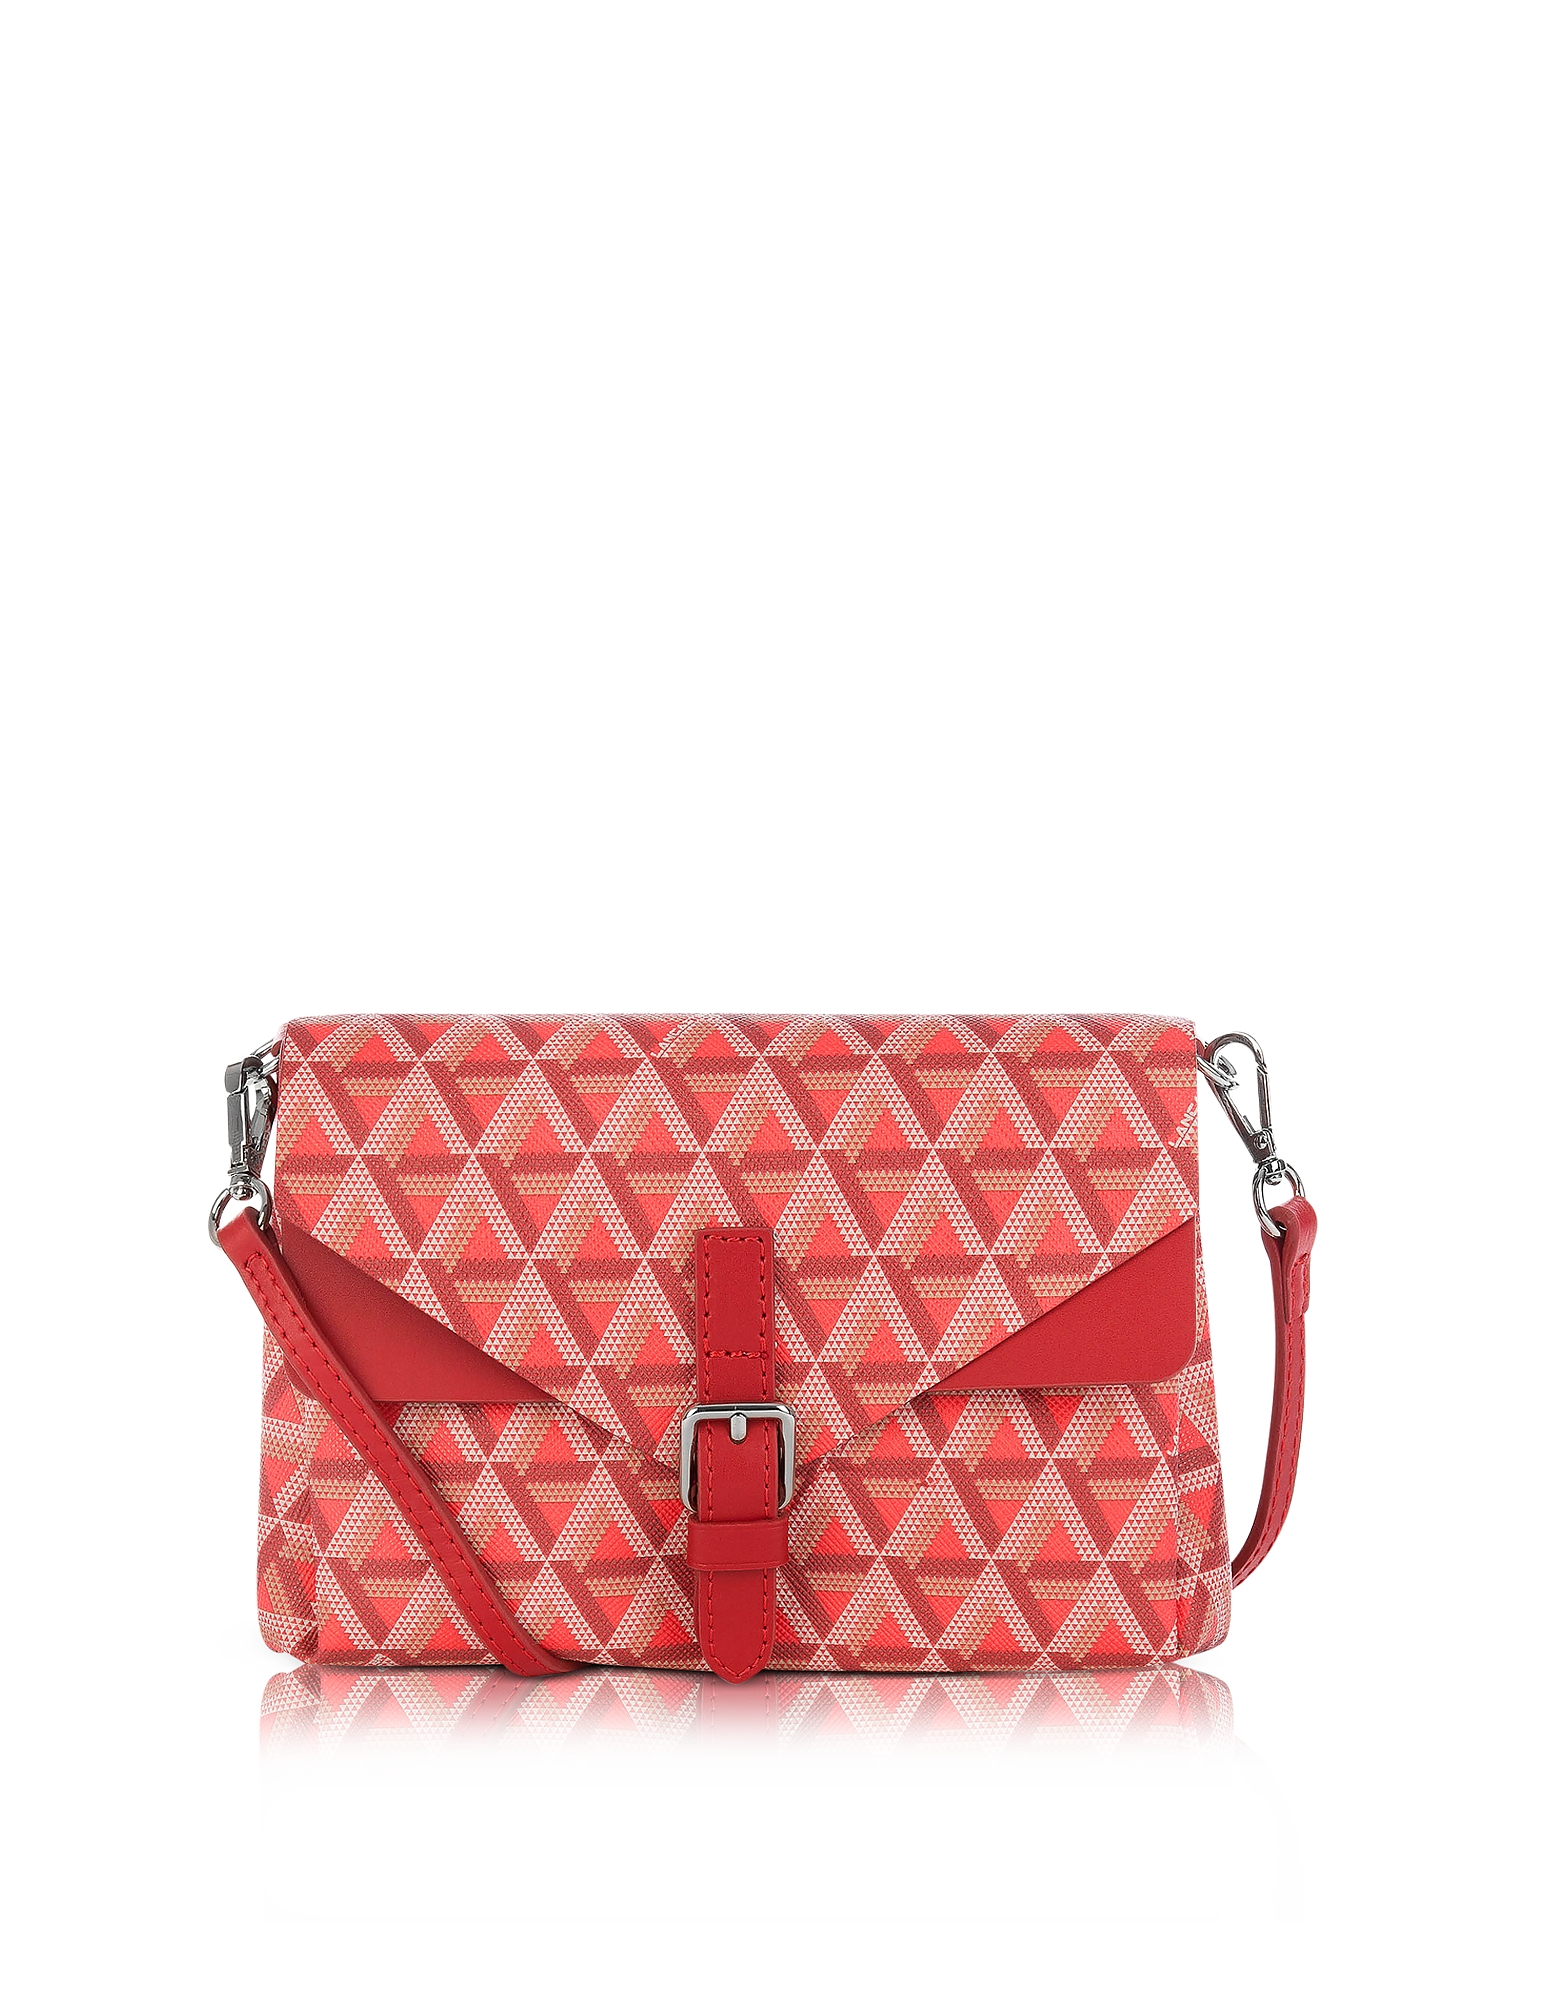 Lancaster Paris Handbags, Ikon Coated Canvas and Leather Mini Clutch